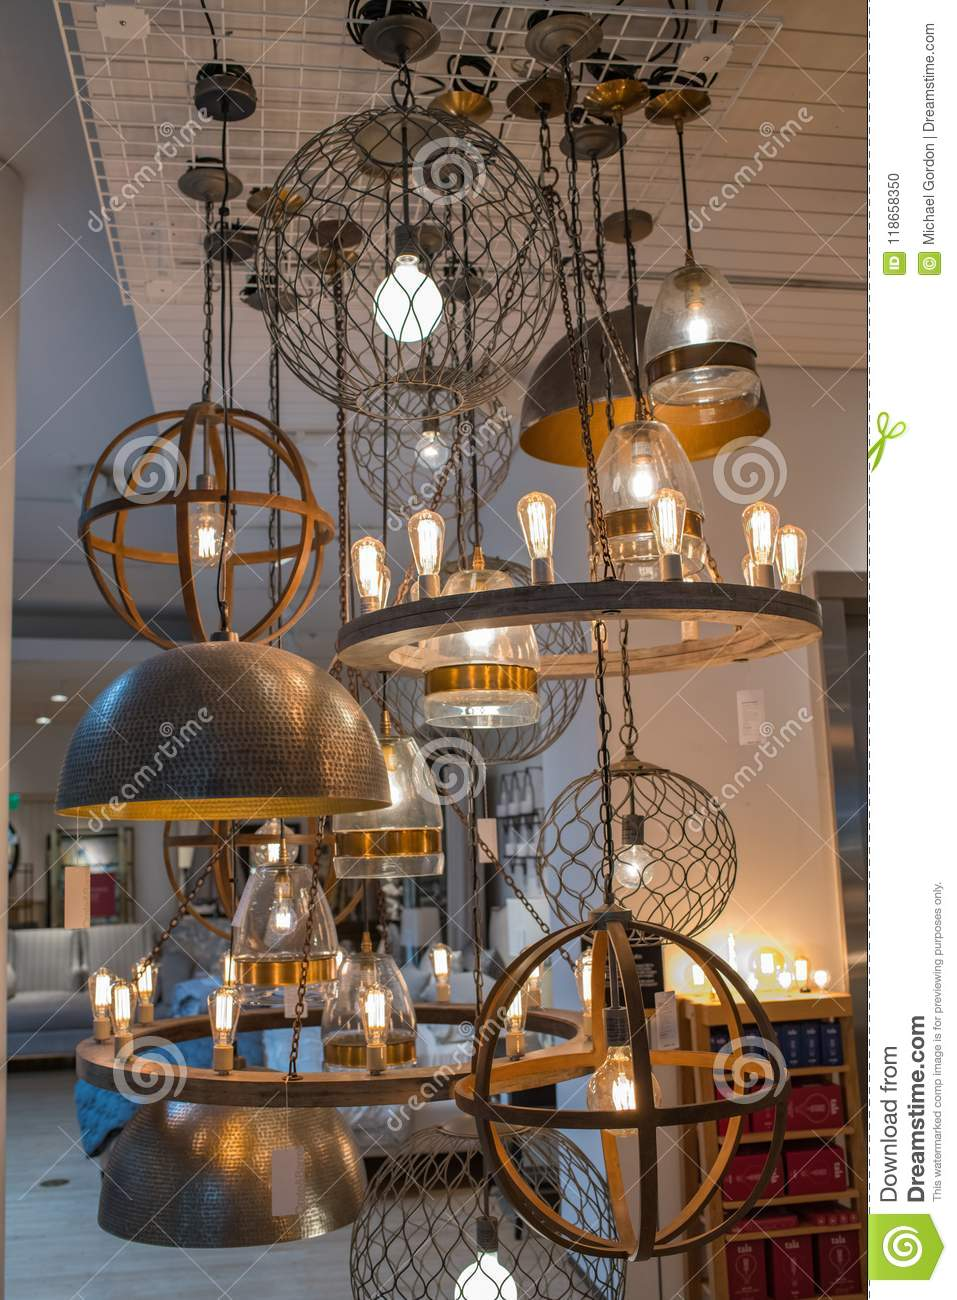 https www dreamstime com los angeles ca june interior crate barrel store crate barrel wholly owned otto gmbh which based germany image118658350